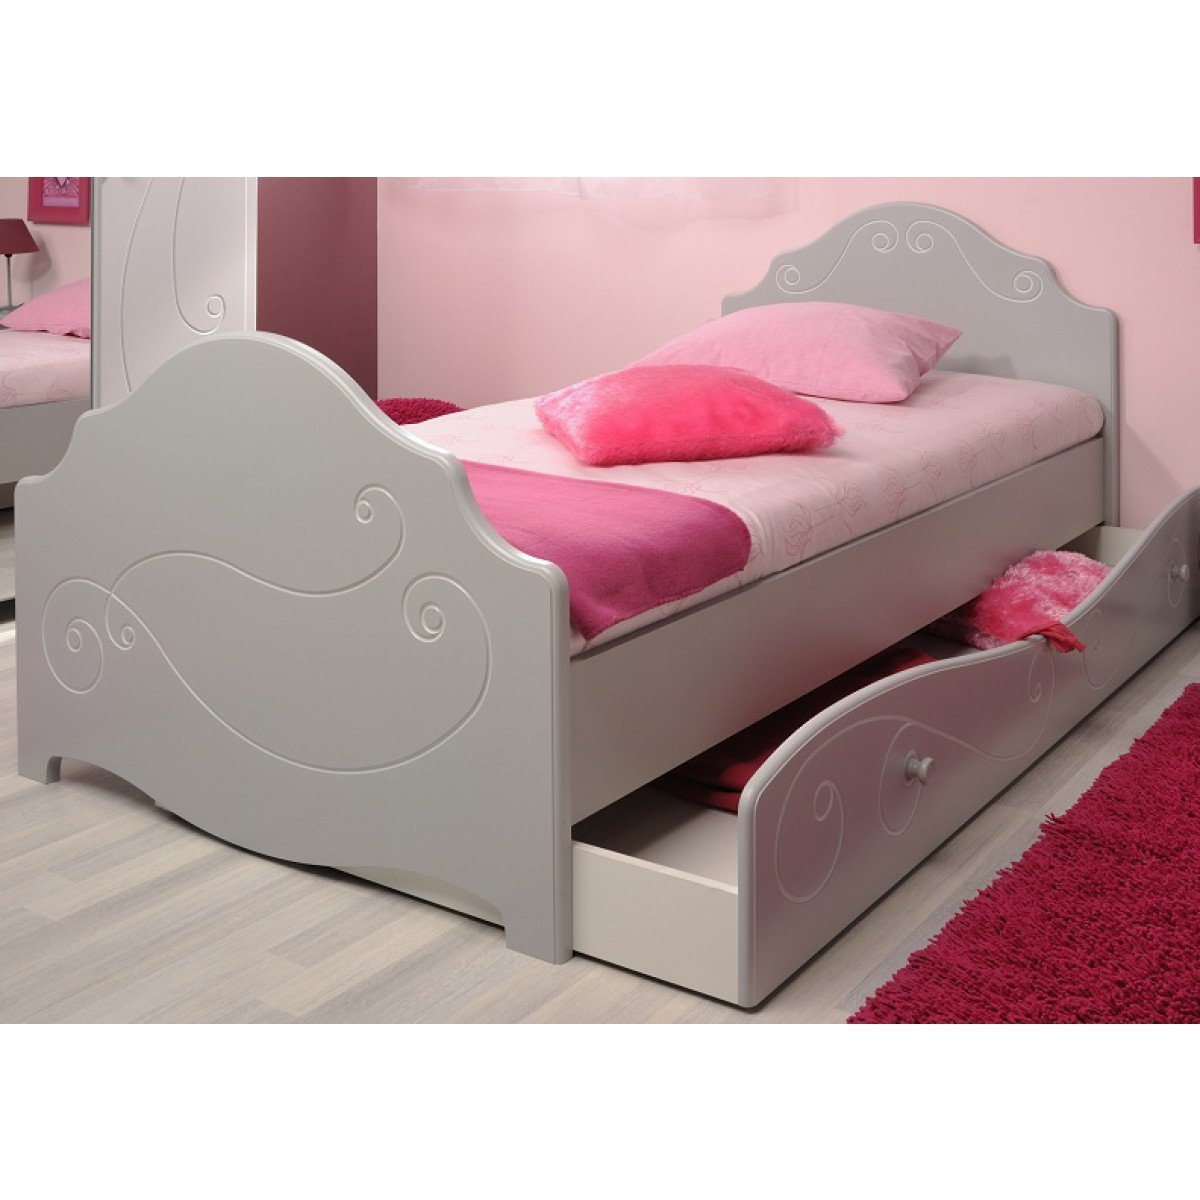 kinderbett mit schublade infos und vergleich. Black Bedroom Furniture Sets. Home Design Ideas